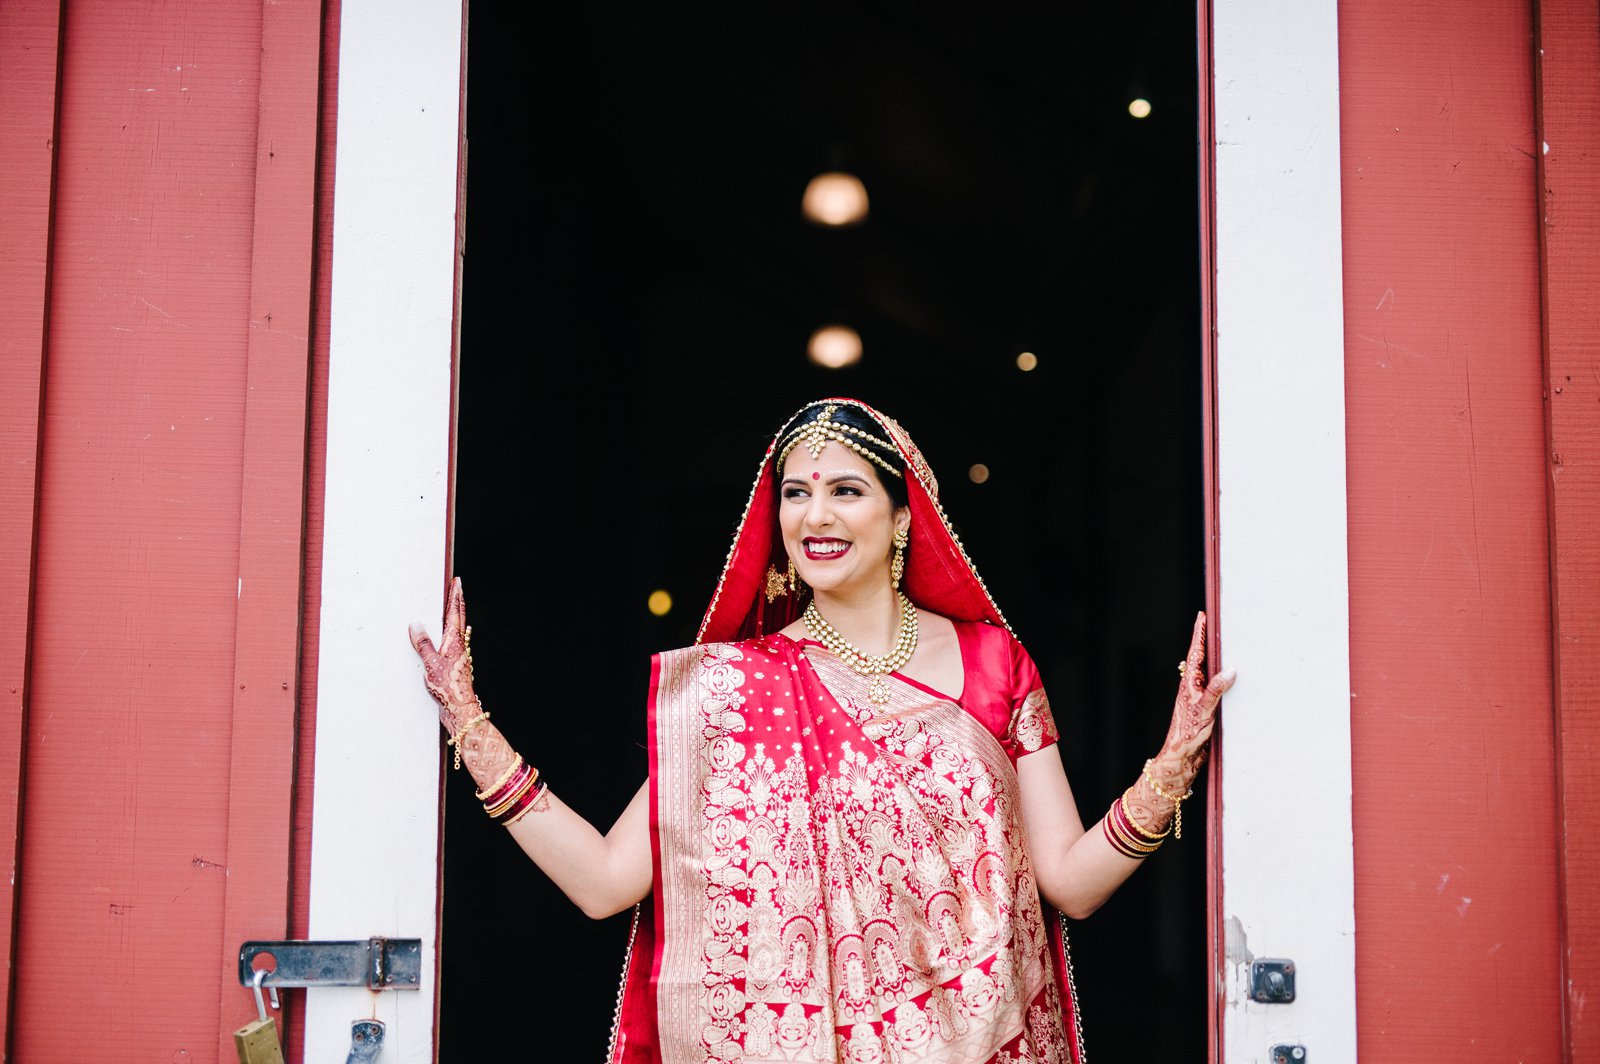 Pickering-Barn-Indian-Wedding-049.jpg